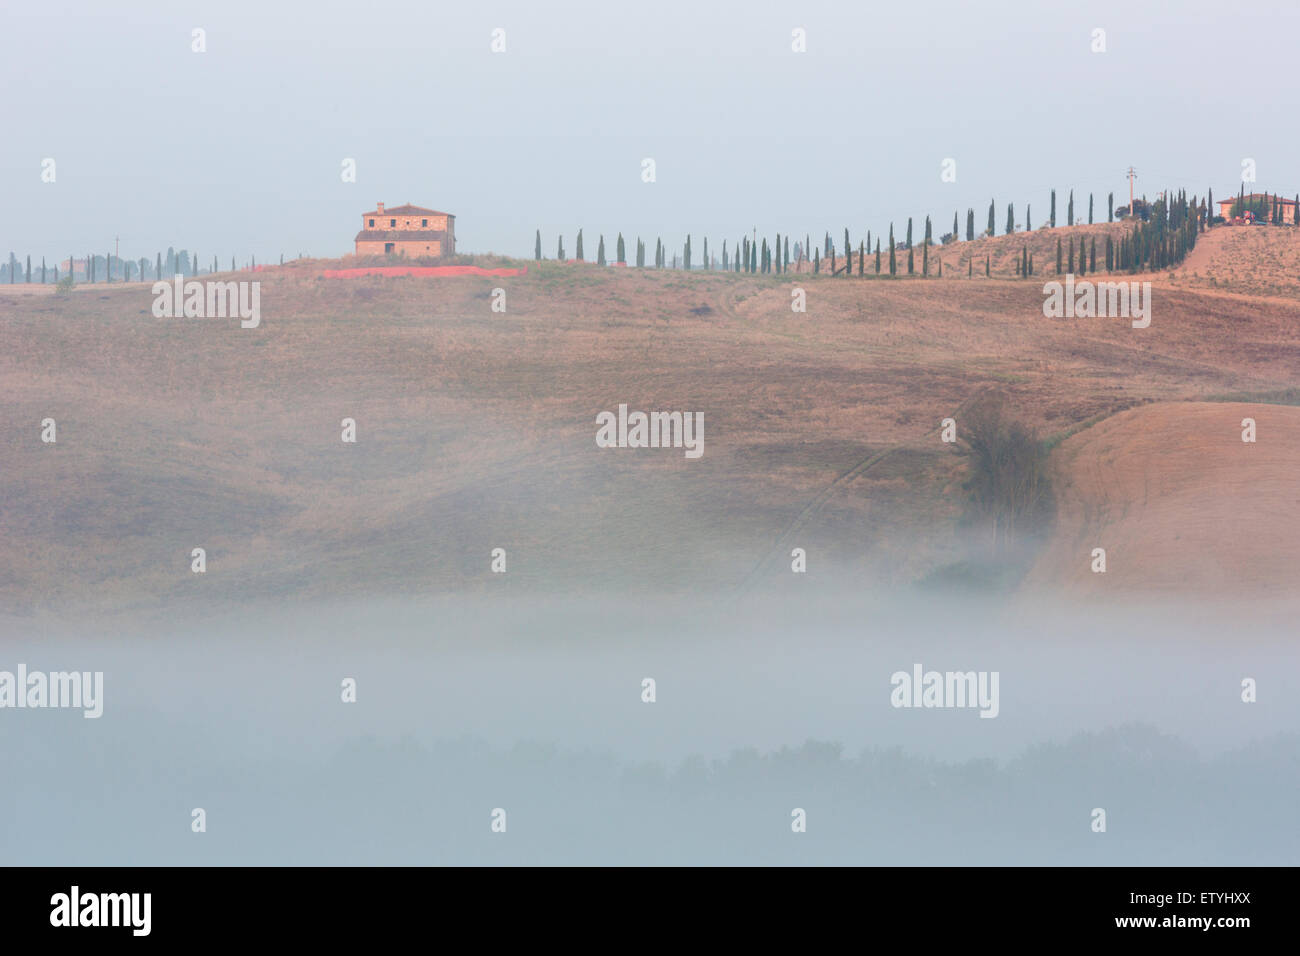 View over agricultural landscape in Val d'Chiana in Tuscany, Italy - Stock Image